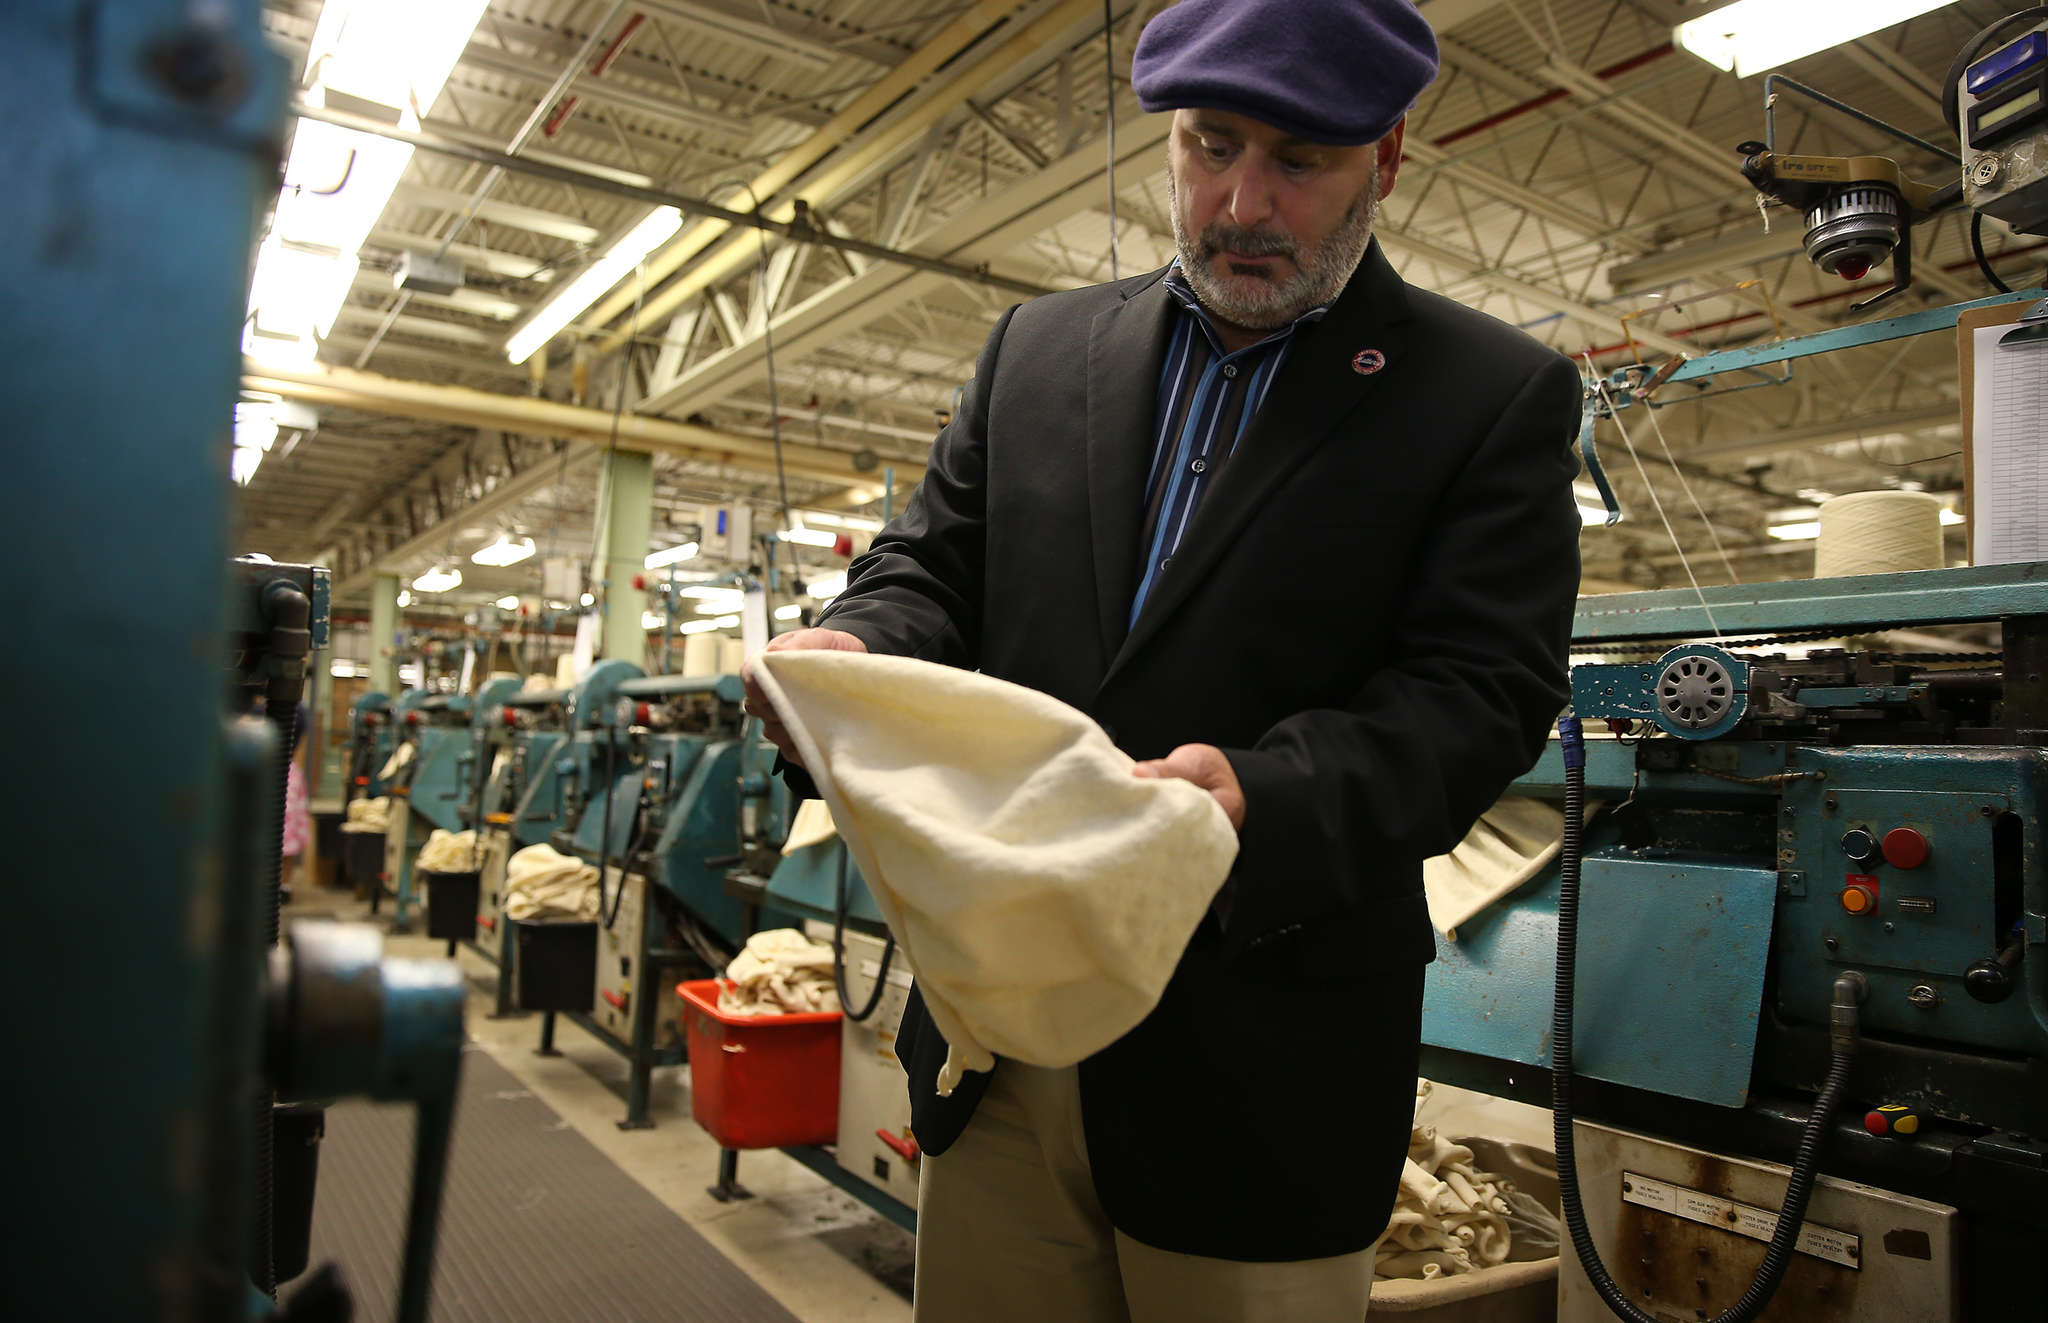 Don Rongione, CEO of Bollman Hat Co., in a Kangol 504. A campaign raised $100,000 to move the Kongol-making machinery from China to the U.S.